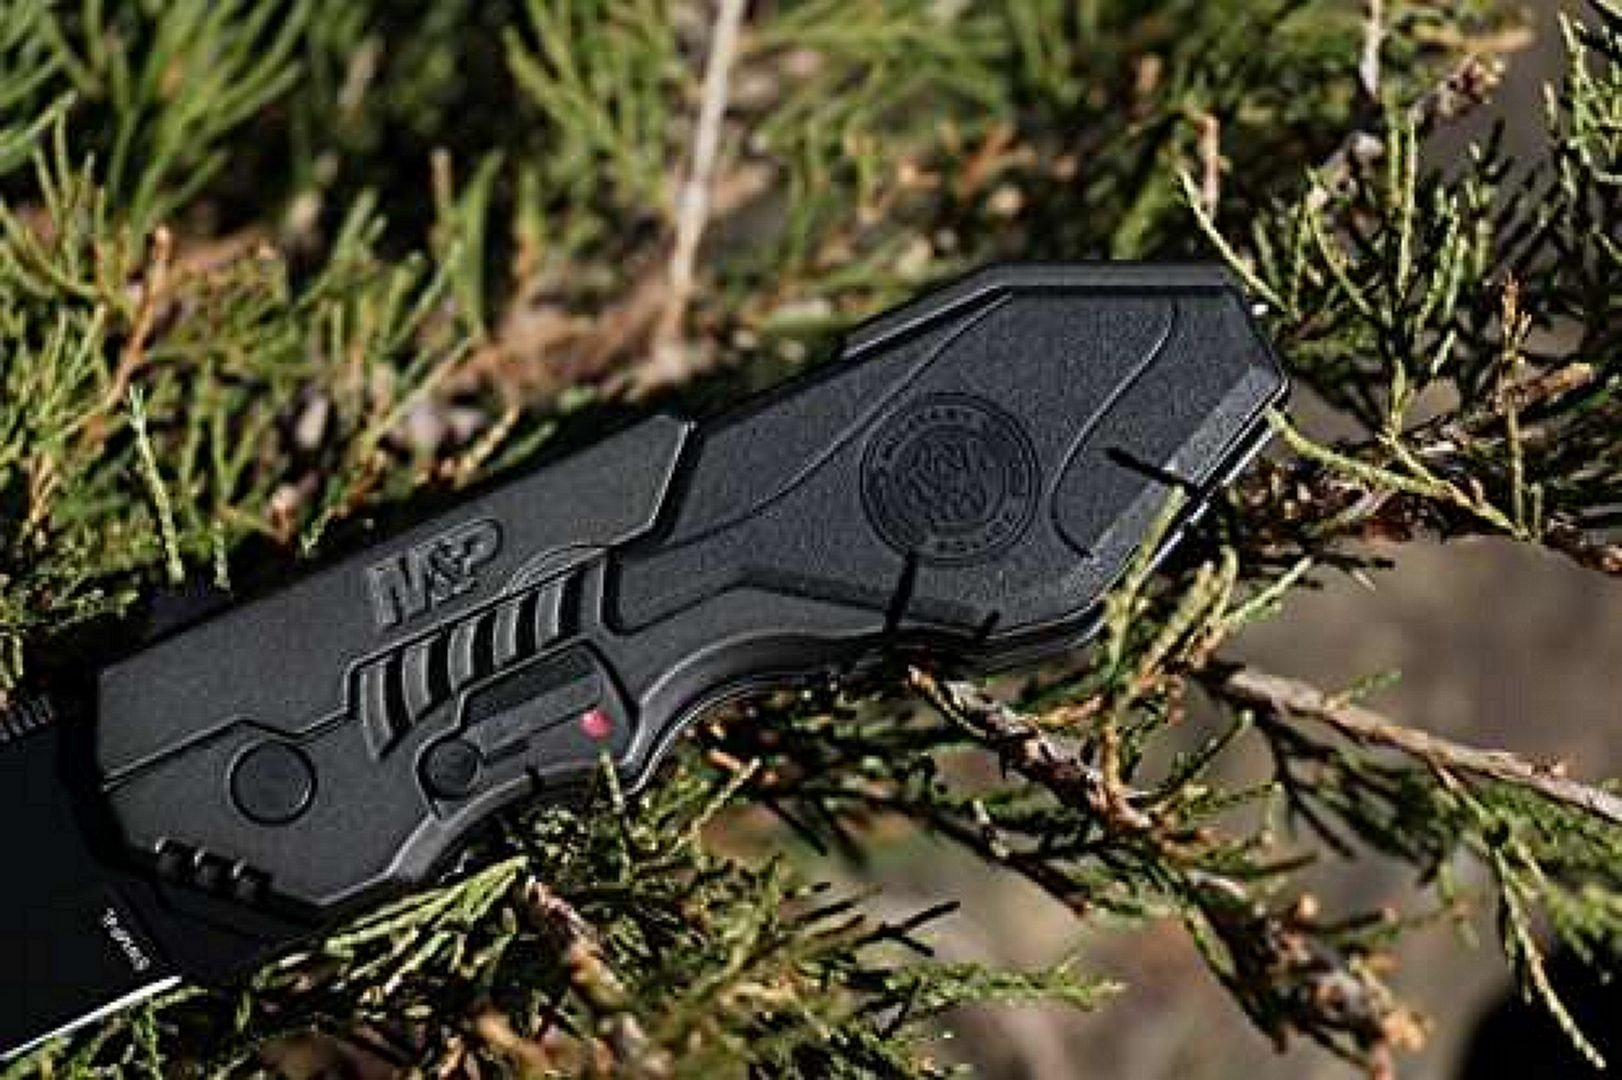 Smith & Wesson SWMP4LS 8.6 inch Spring Assisted Folding Knife